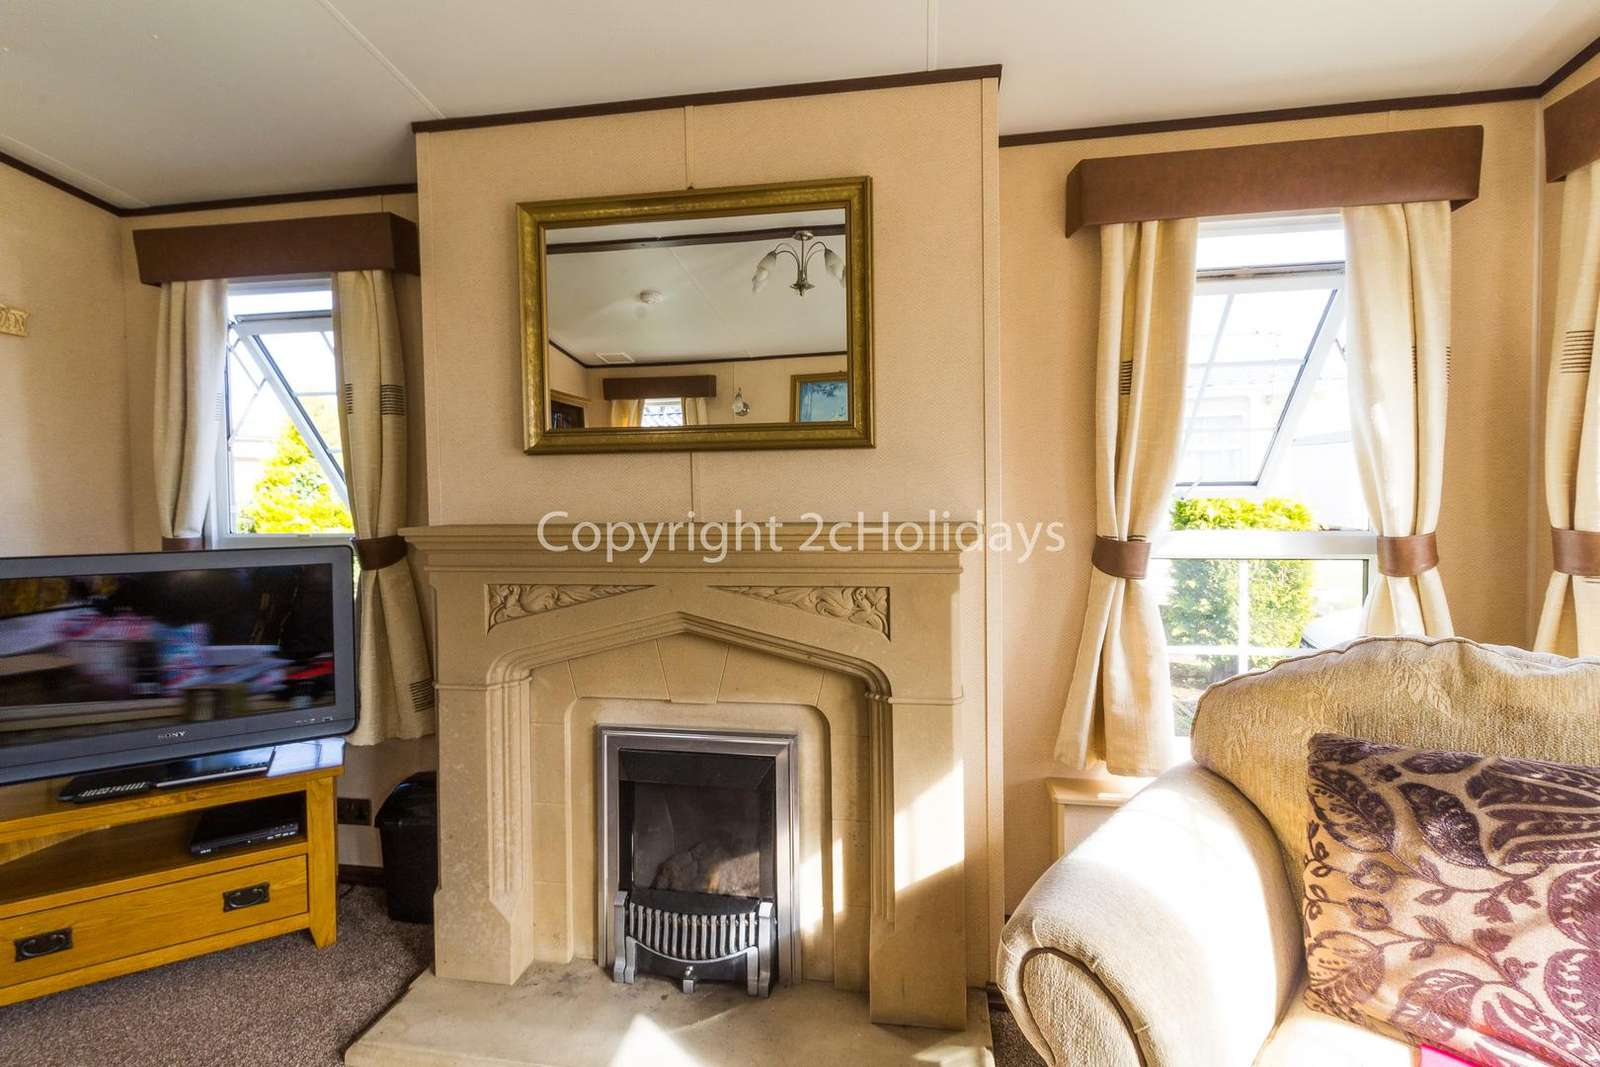 Homely feel to this lounge with a TV and gas fire!